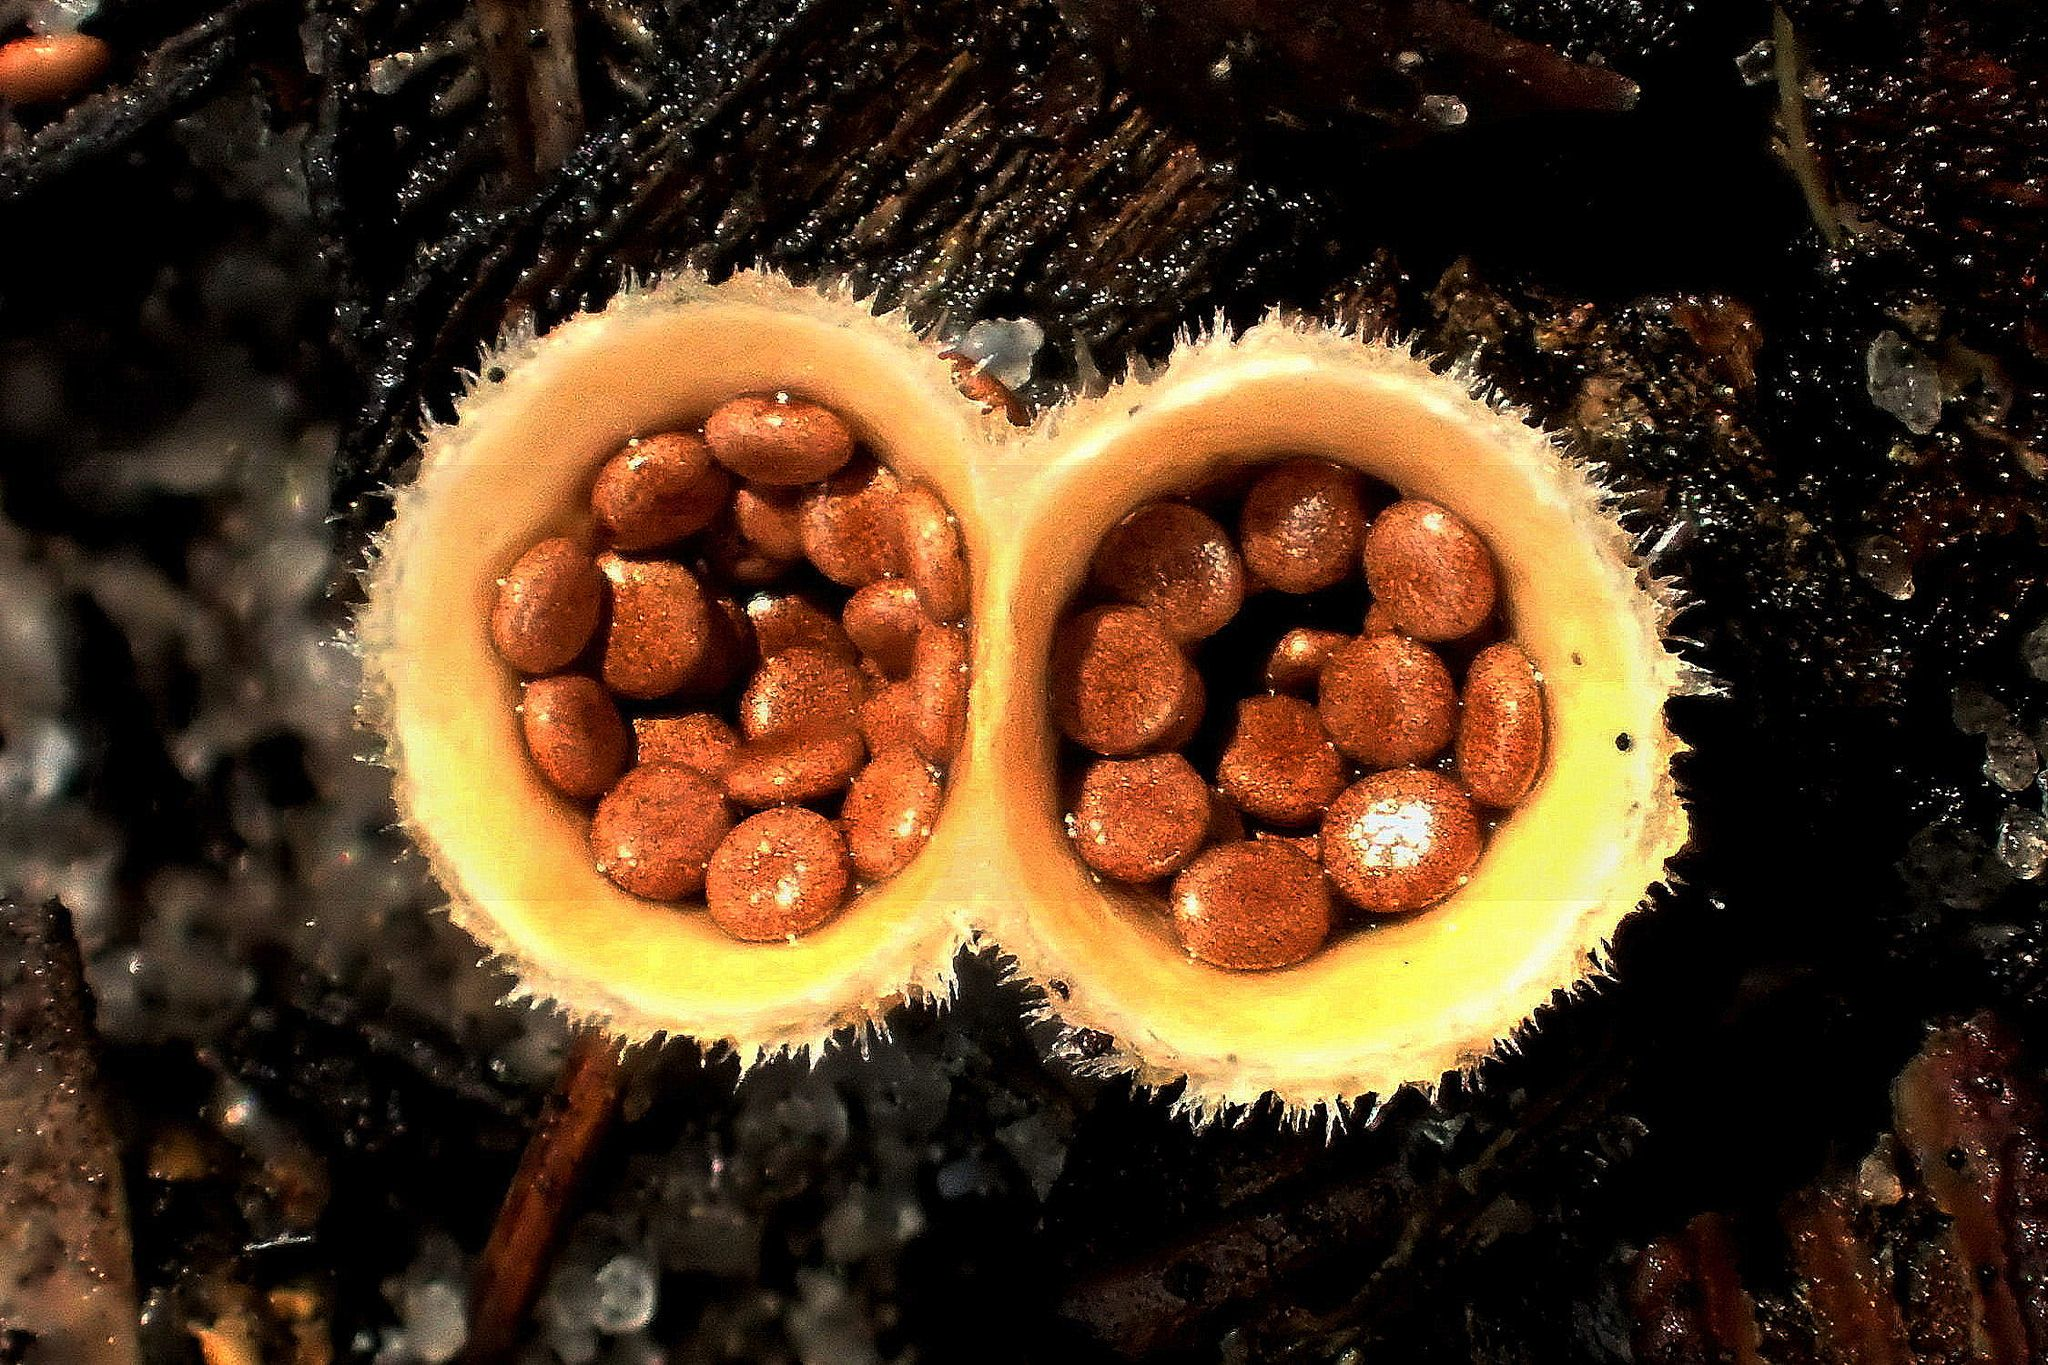 https://flic.kr/p/Jz8fS3   BIRD'S NEST Fungi - Nidula niveotomentosa   Many thanks to everyone who takes the time to view, fave and comment on my photos - ALWAYS APPRECIATED !!!!!